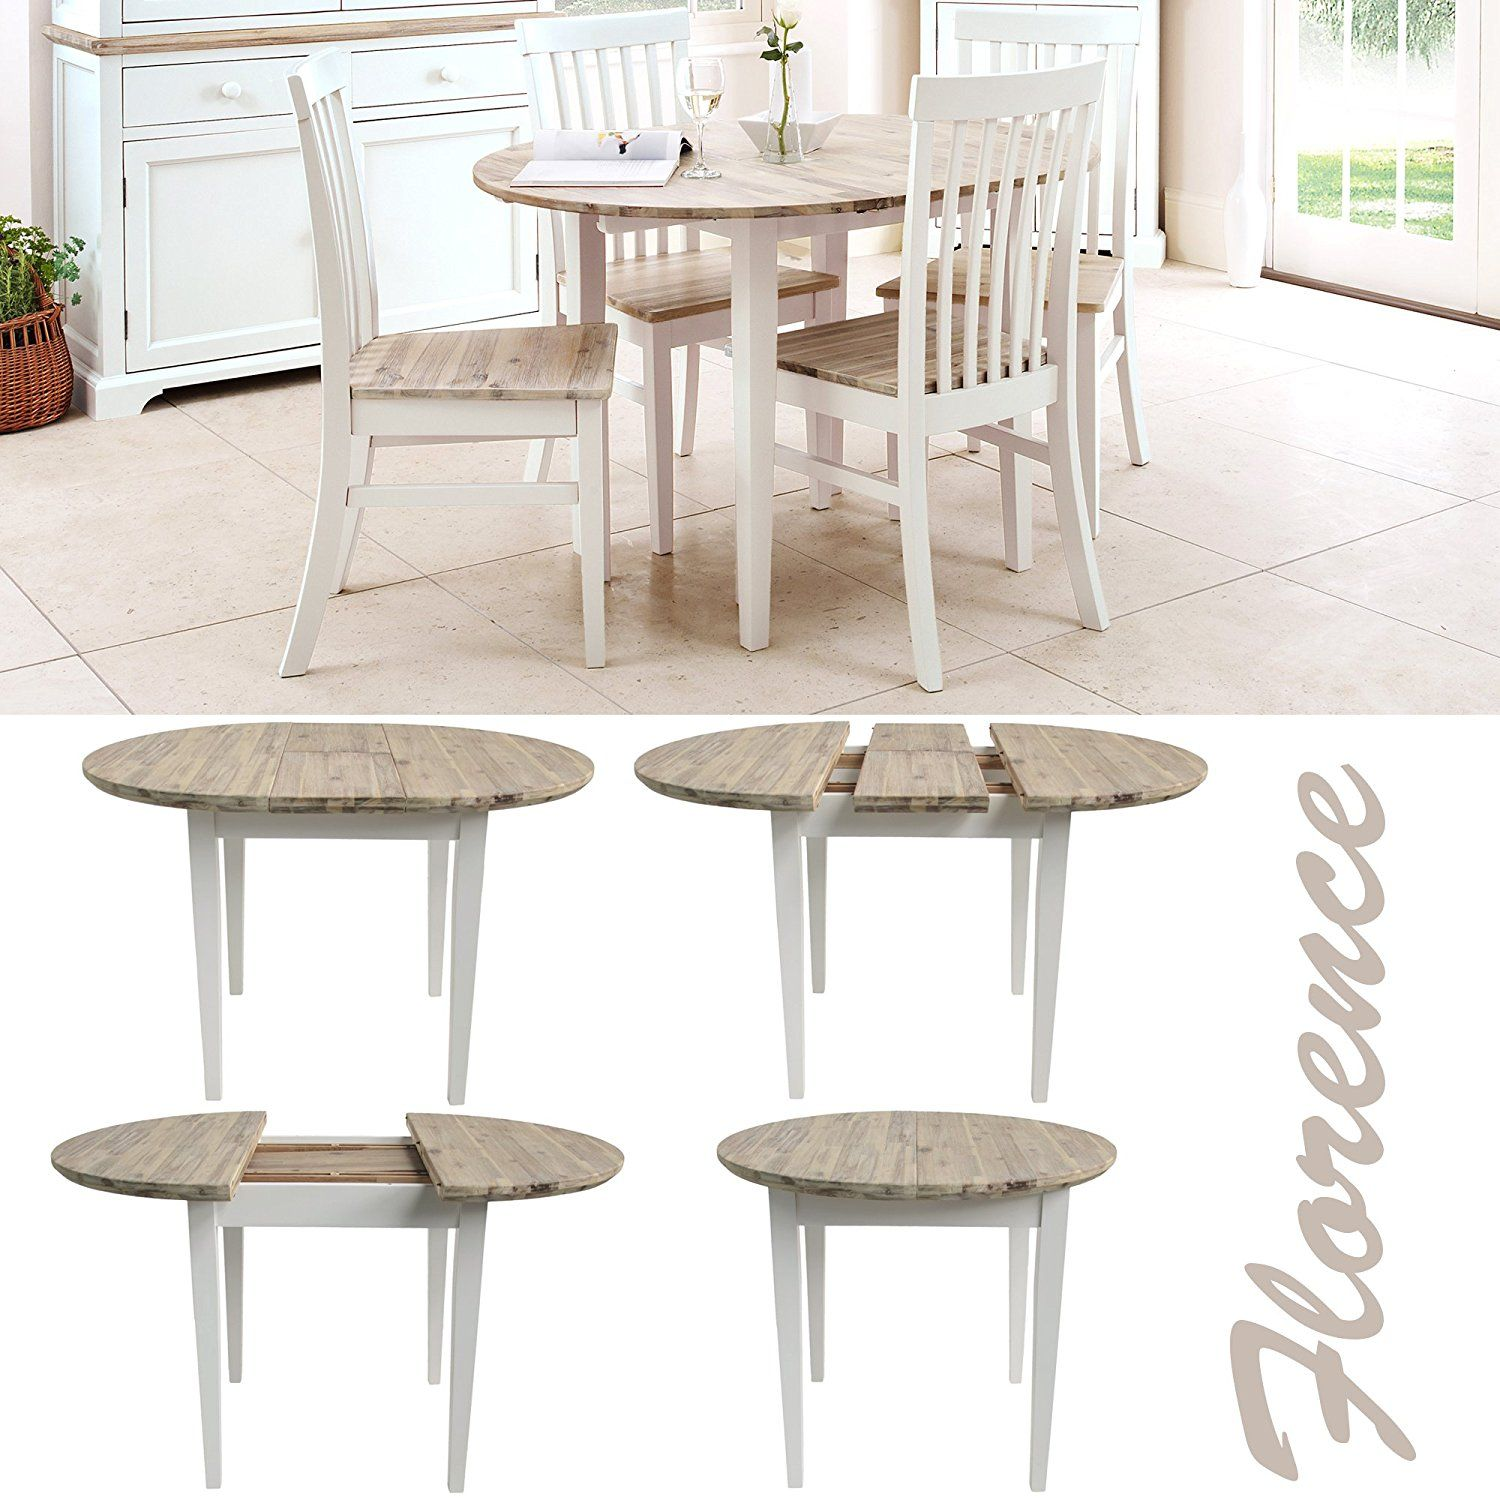 Florence round extended table (92-117cm). Stunning white kitchen dining table with brushed acacia top. Tab… | Dining table in kitchen, Matching chairs, Dining table